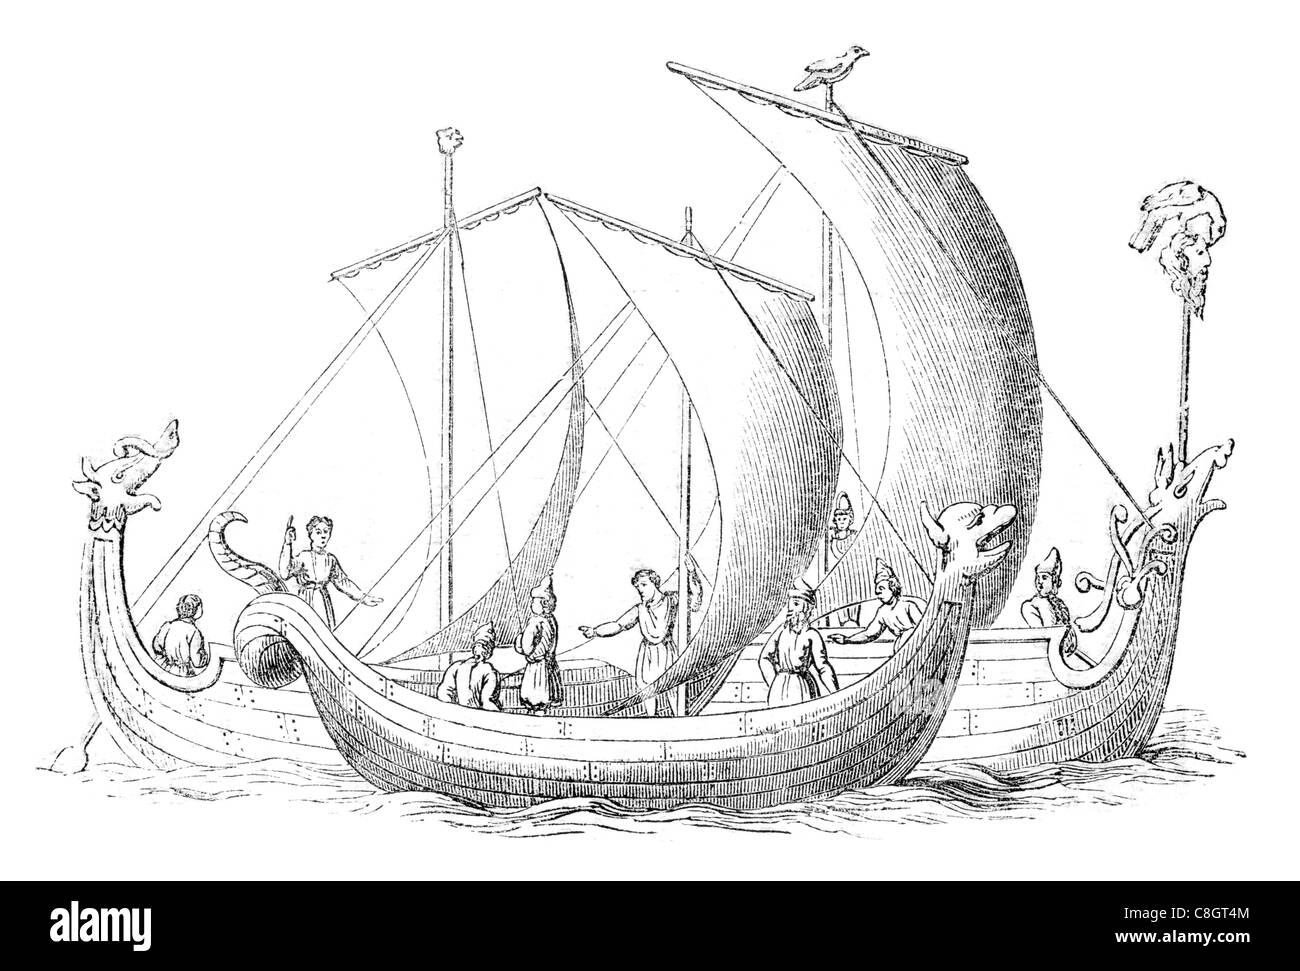 Anglo Saxon Ship sail sailing sailor ships shipping war marine Naval Navy vessel cargo goods seas sea transport - Stock Image